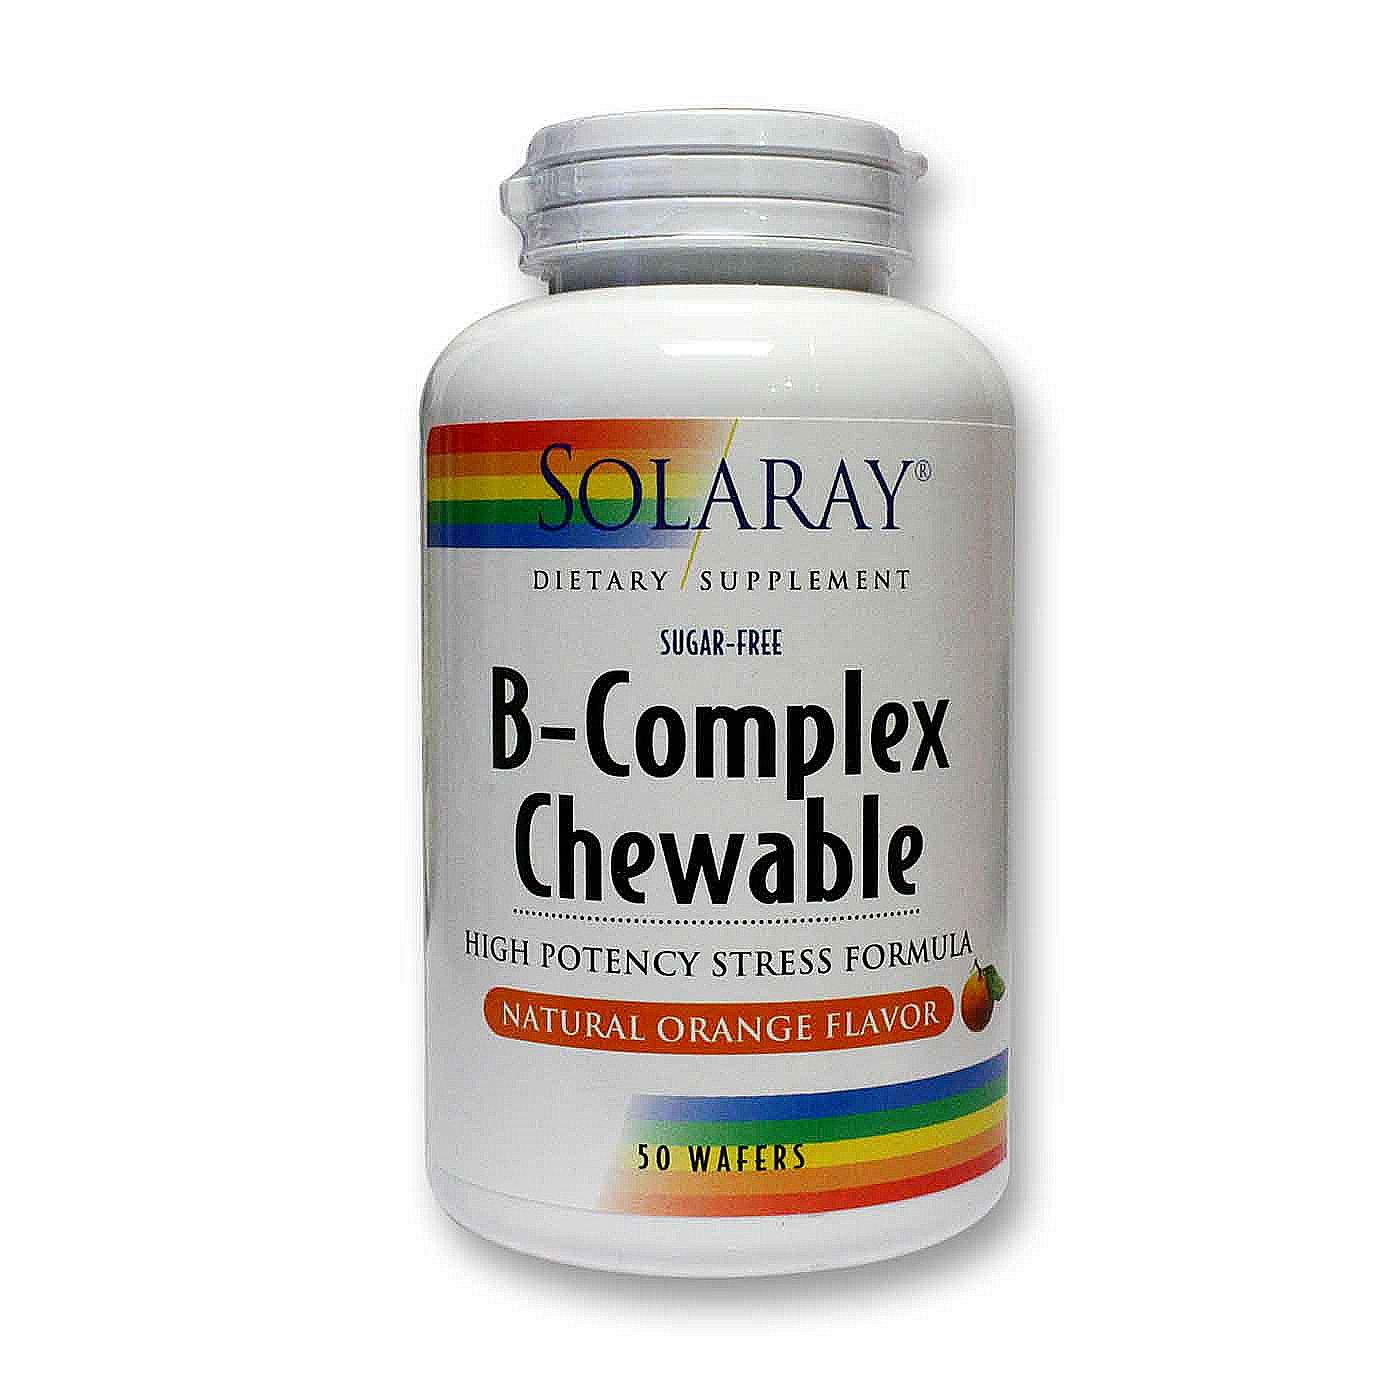 Chewable b complex